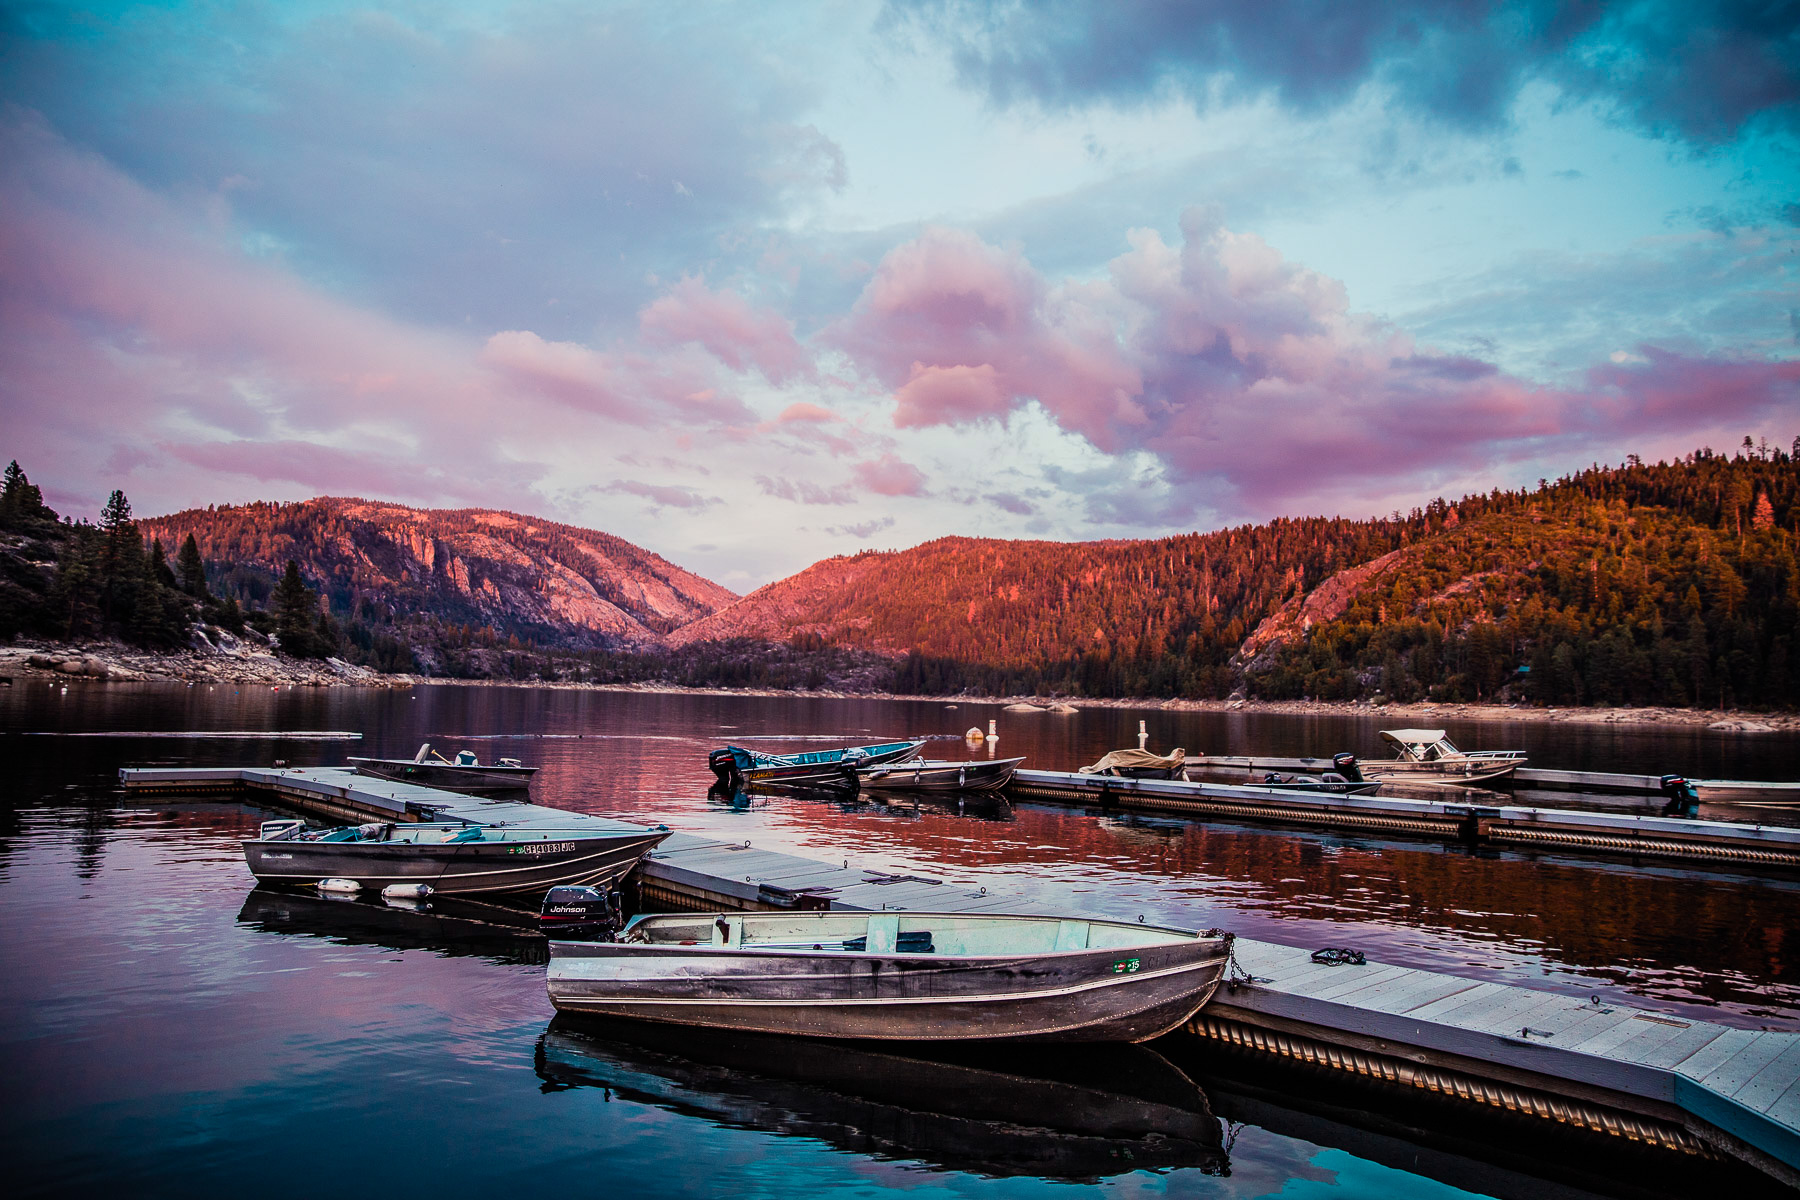 0649_F16_PINECREST_LAKE_LANDSCAPES_0220_